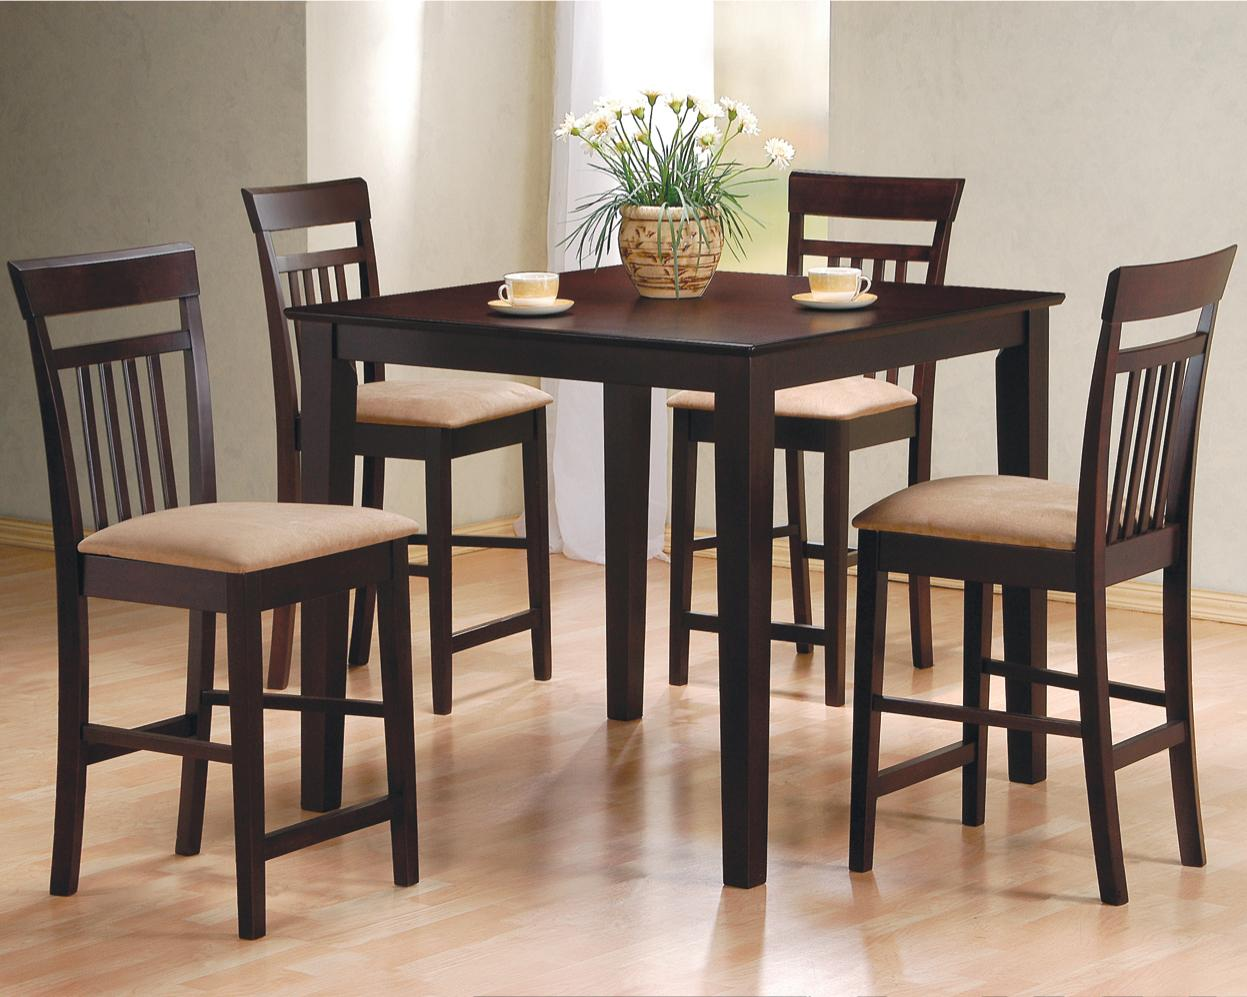 Best Furniture Stores In Northern Va Modern 5 Pc Counter Height Table And Stools Fairfax Va Furniture